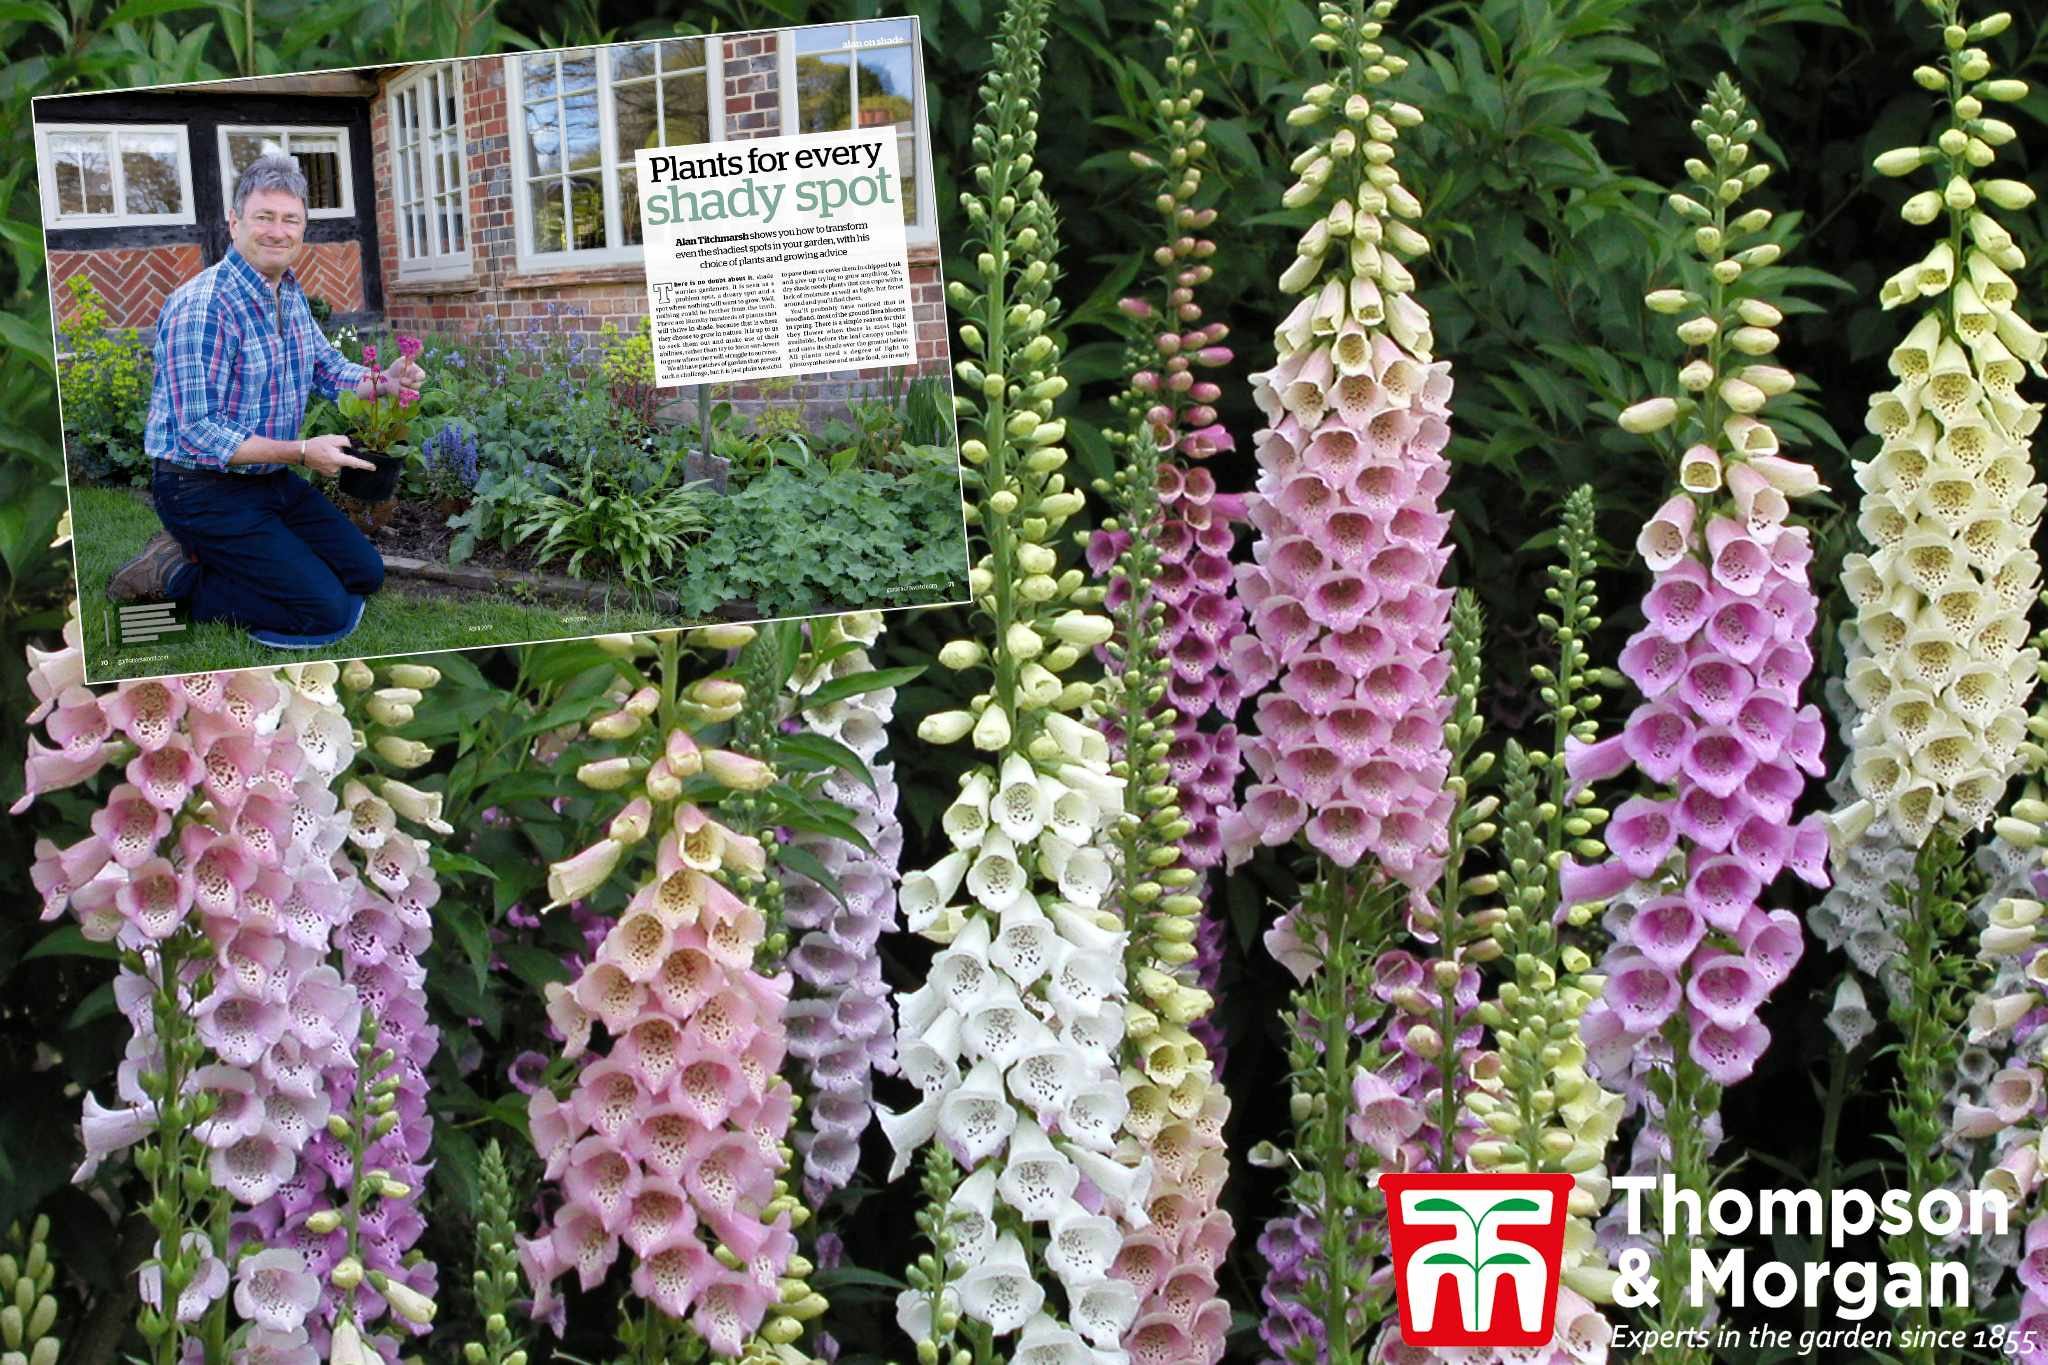 offers-page-hero-tandm-shade-loving-perennials-2048-1365